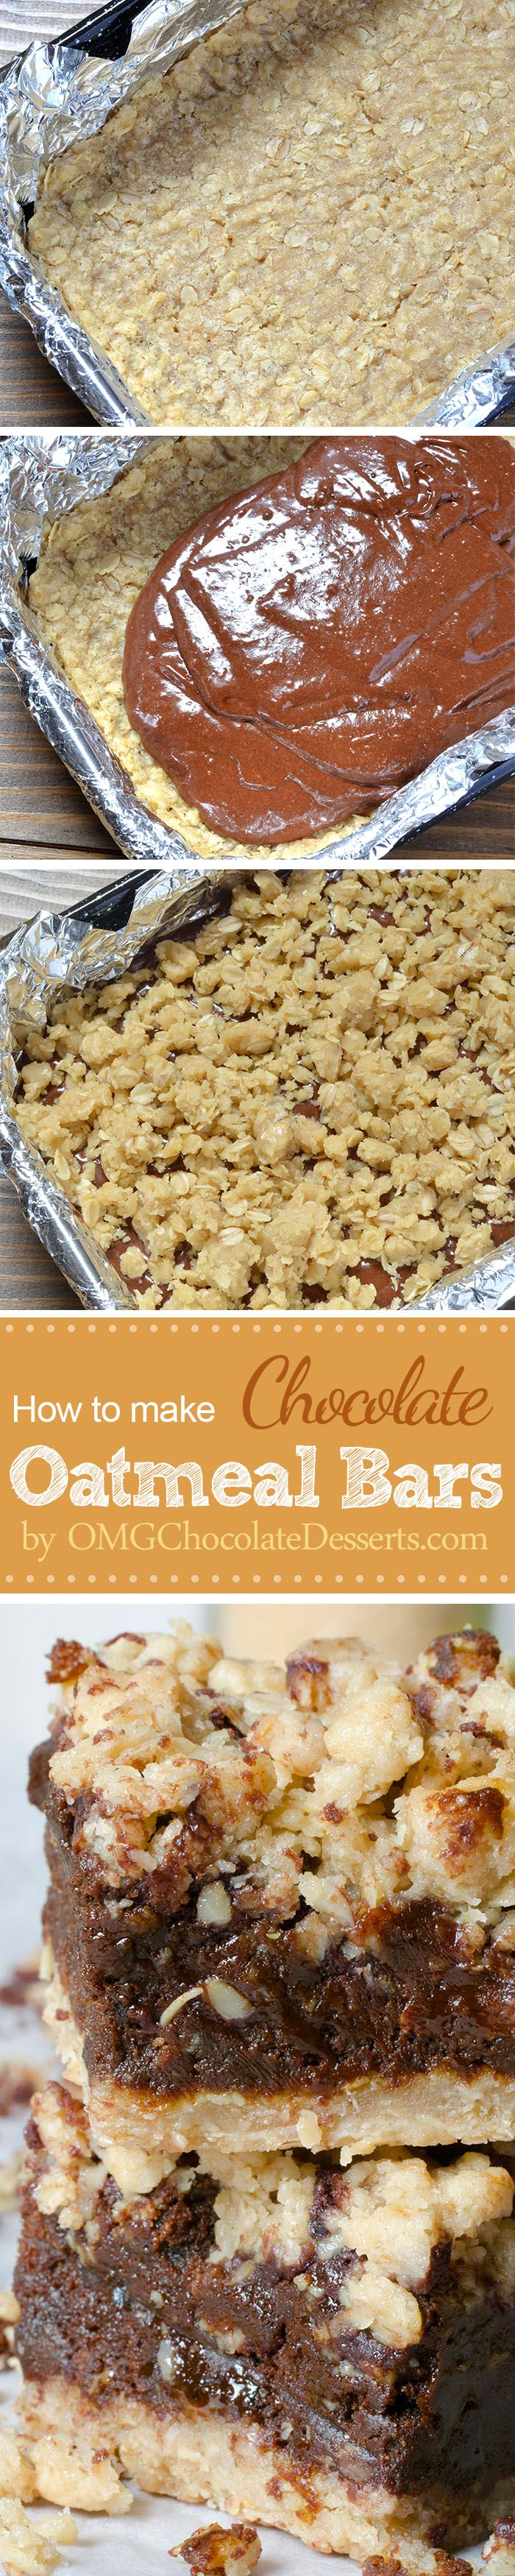 Chocolate Oatmeal Bars | OMGChocolateDesserts.com |